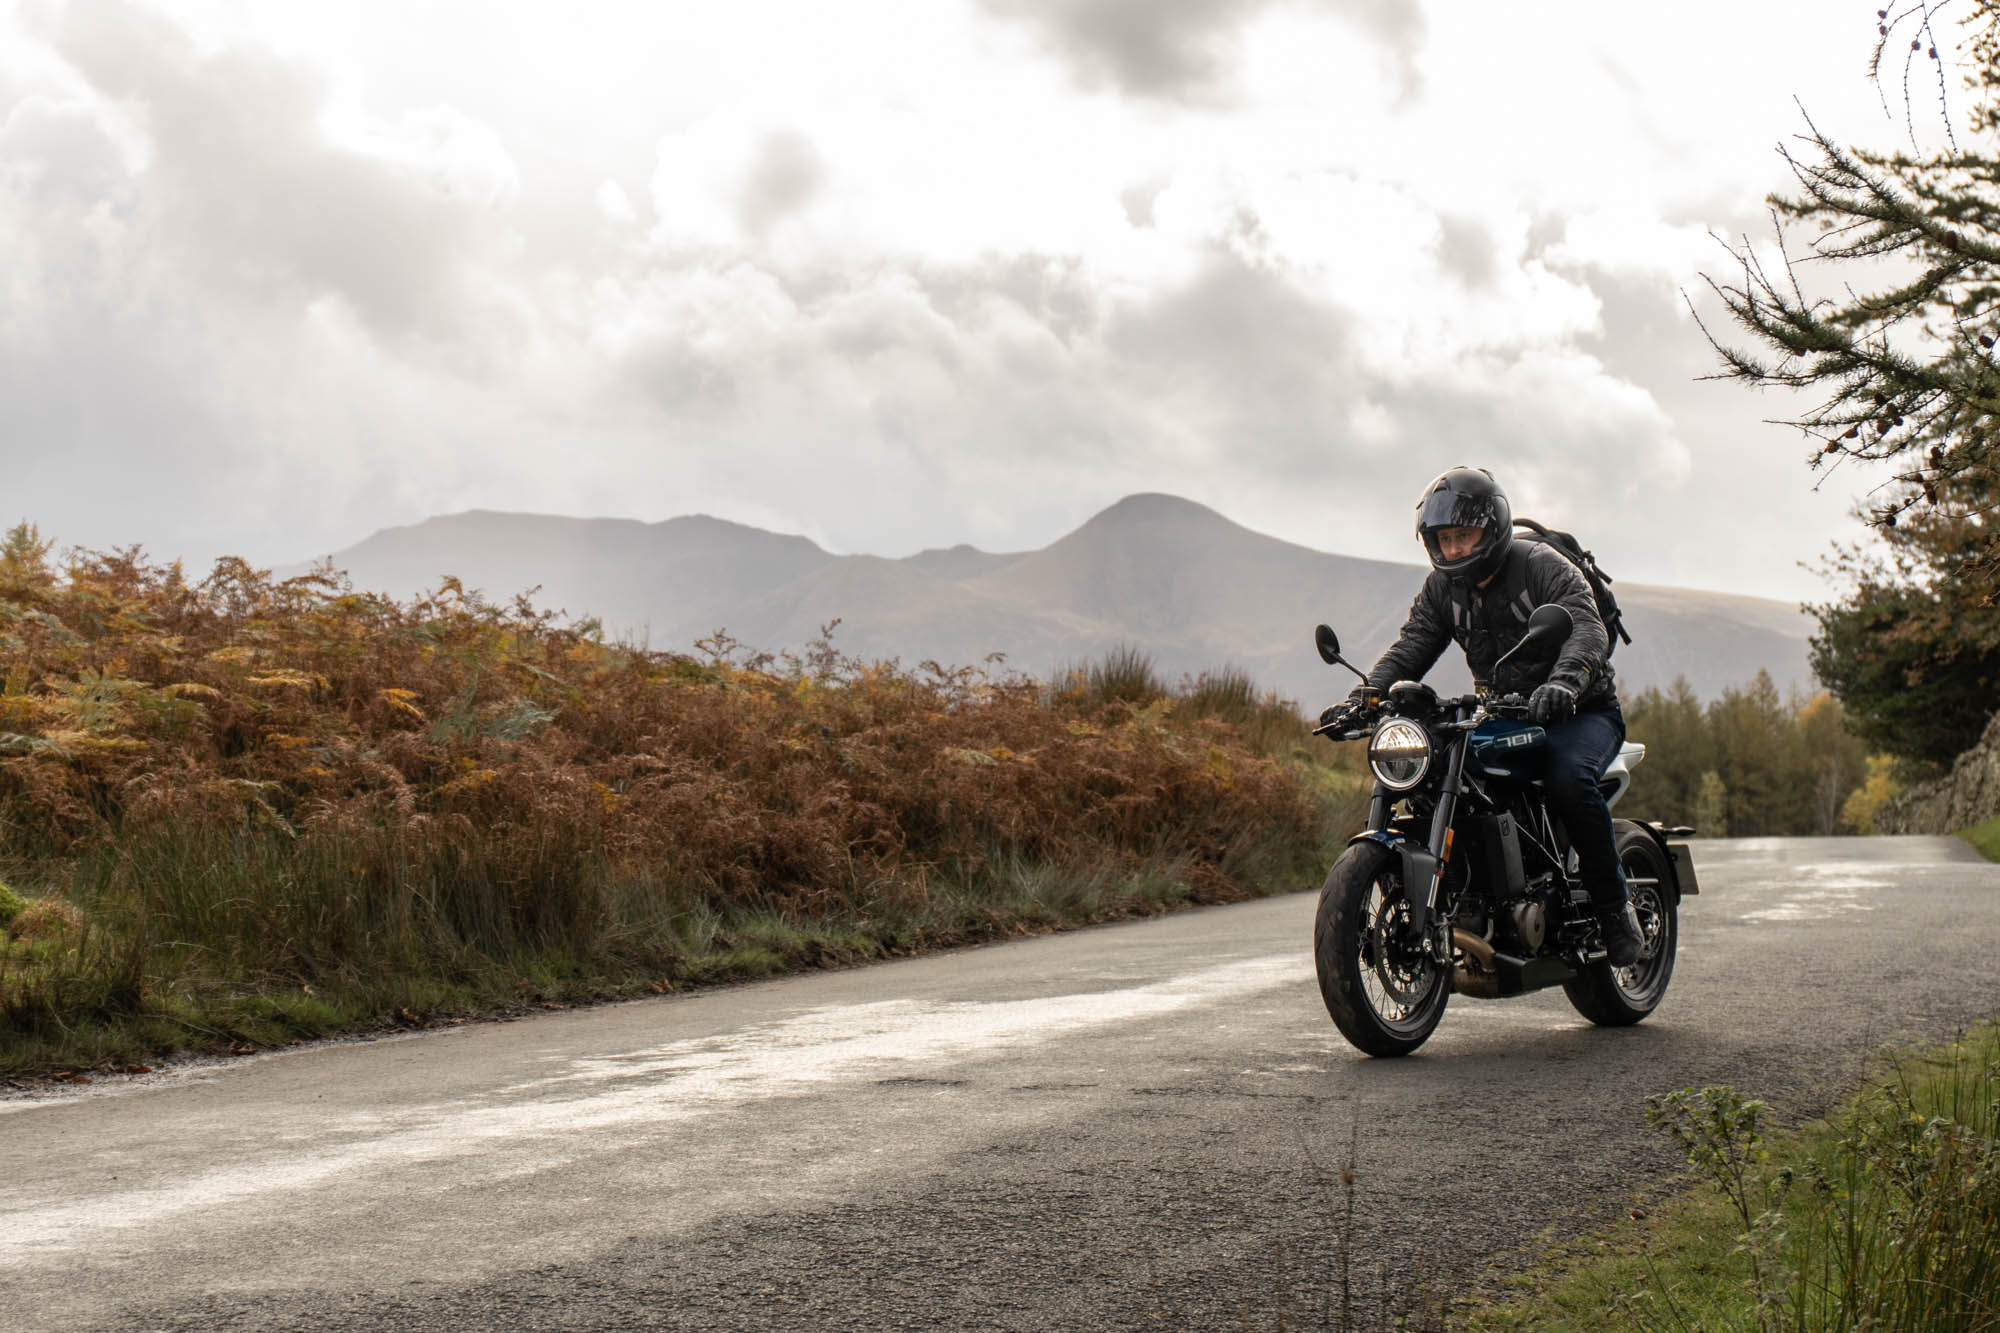 Best Motorcycle Gear for Autumn - Winter